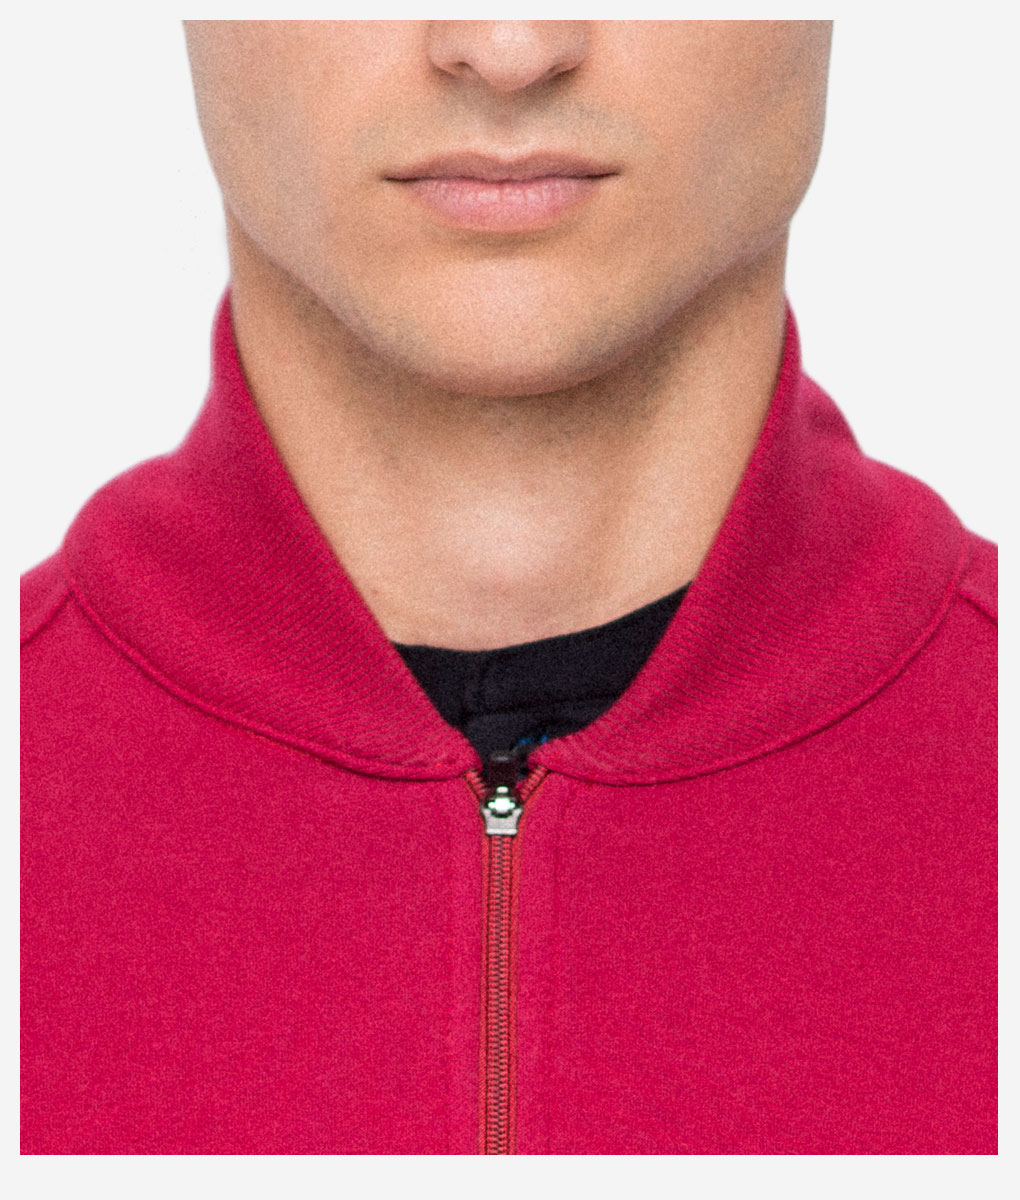 casual-cycling-clothing-jacket-garnet-canale-neck-front-neck-d01